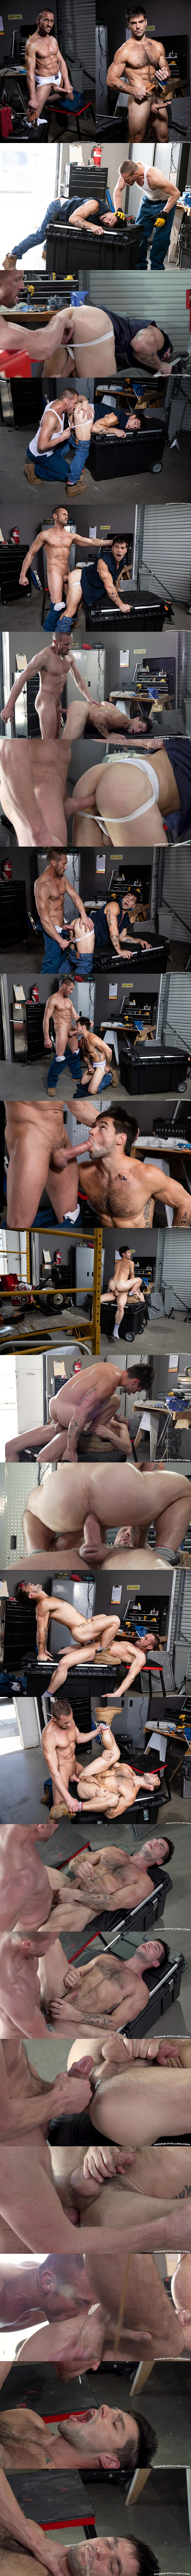 Ragingstallion - ripped, masculine daddy Myles Landon barebacks sexy muscle jock Aspen until he fucks the cum out of Aspen and breeds him with feltching in Maximum Torque 02